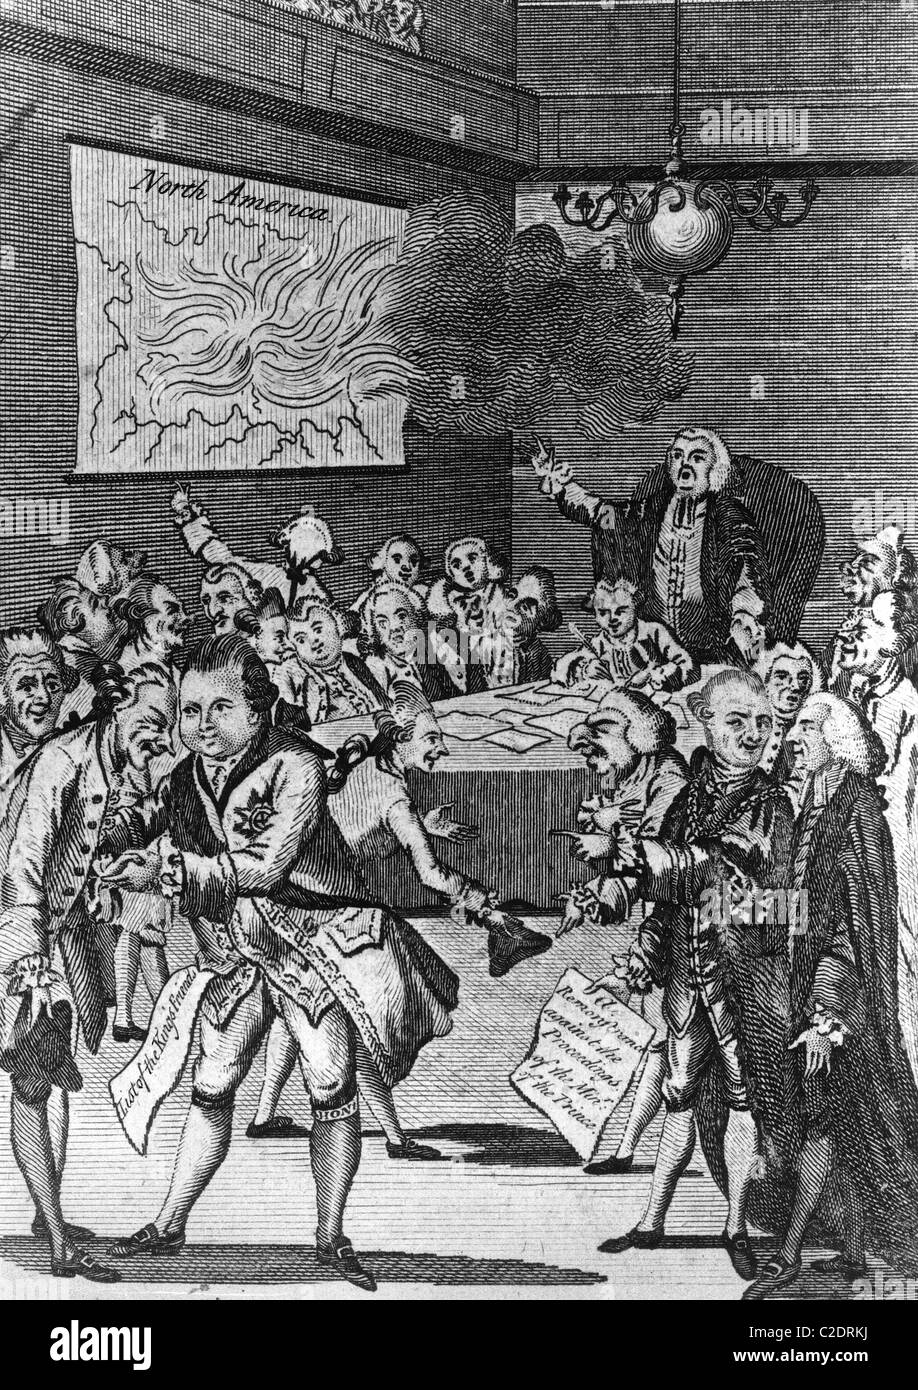 Caricature on the start of the Revolutionary War - Stock Image